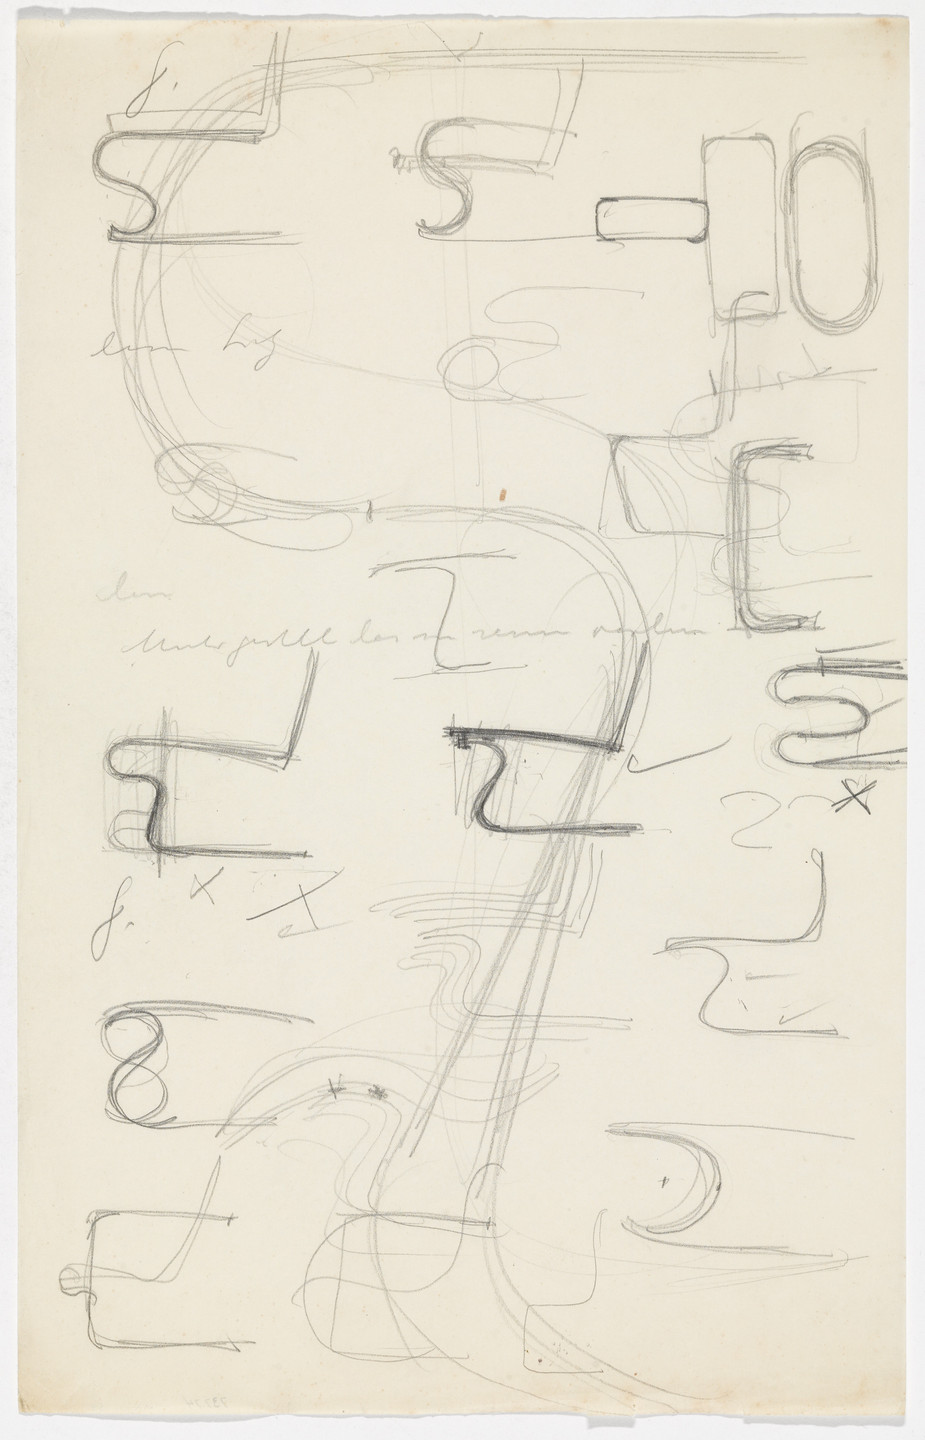 Ludwig Mies van der Rohe. Chair without Arms (Tugendhat-related studies) (Elevation sketches). c.1930